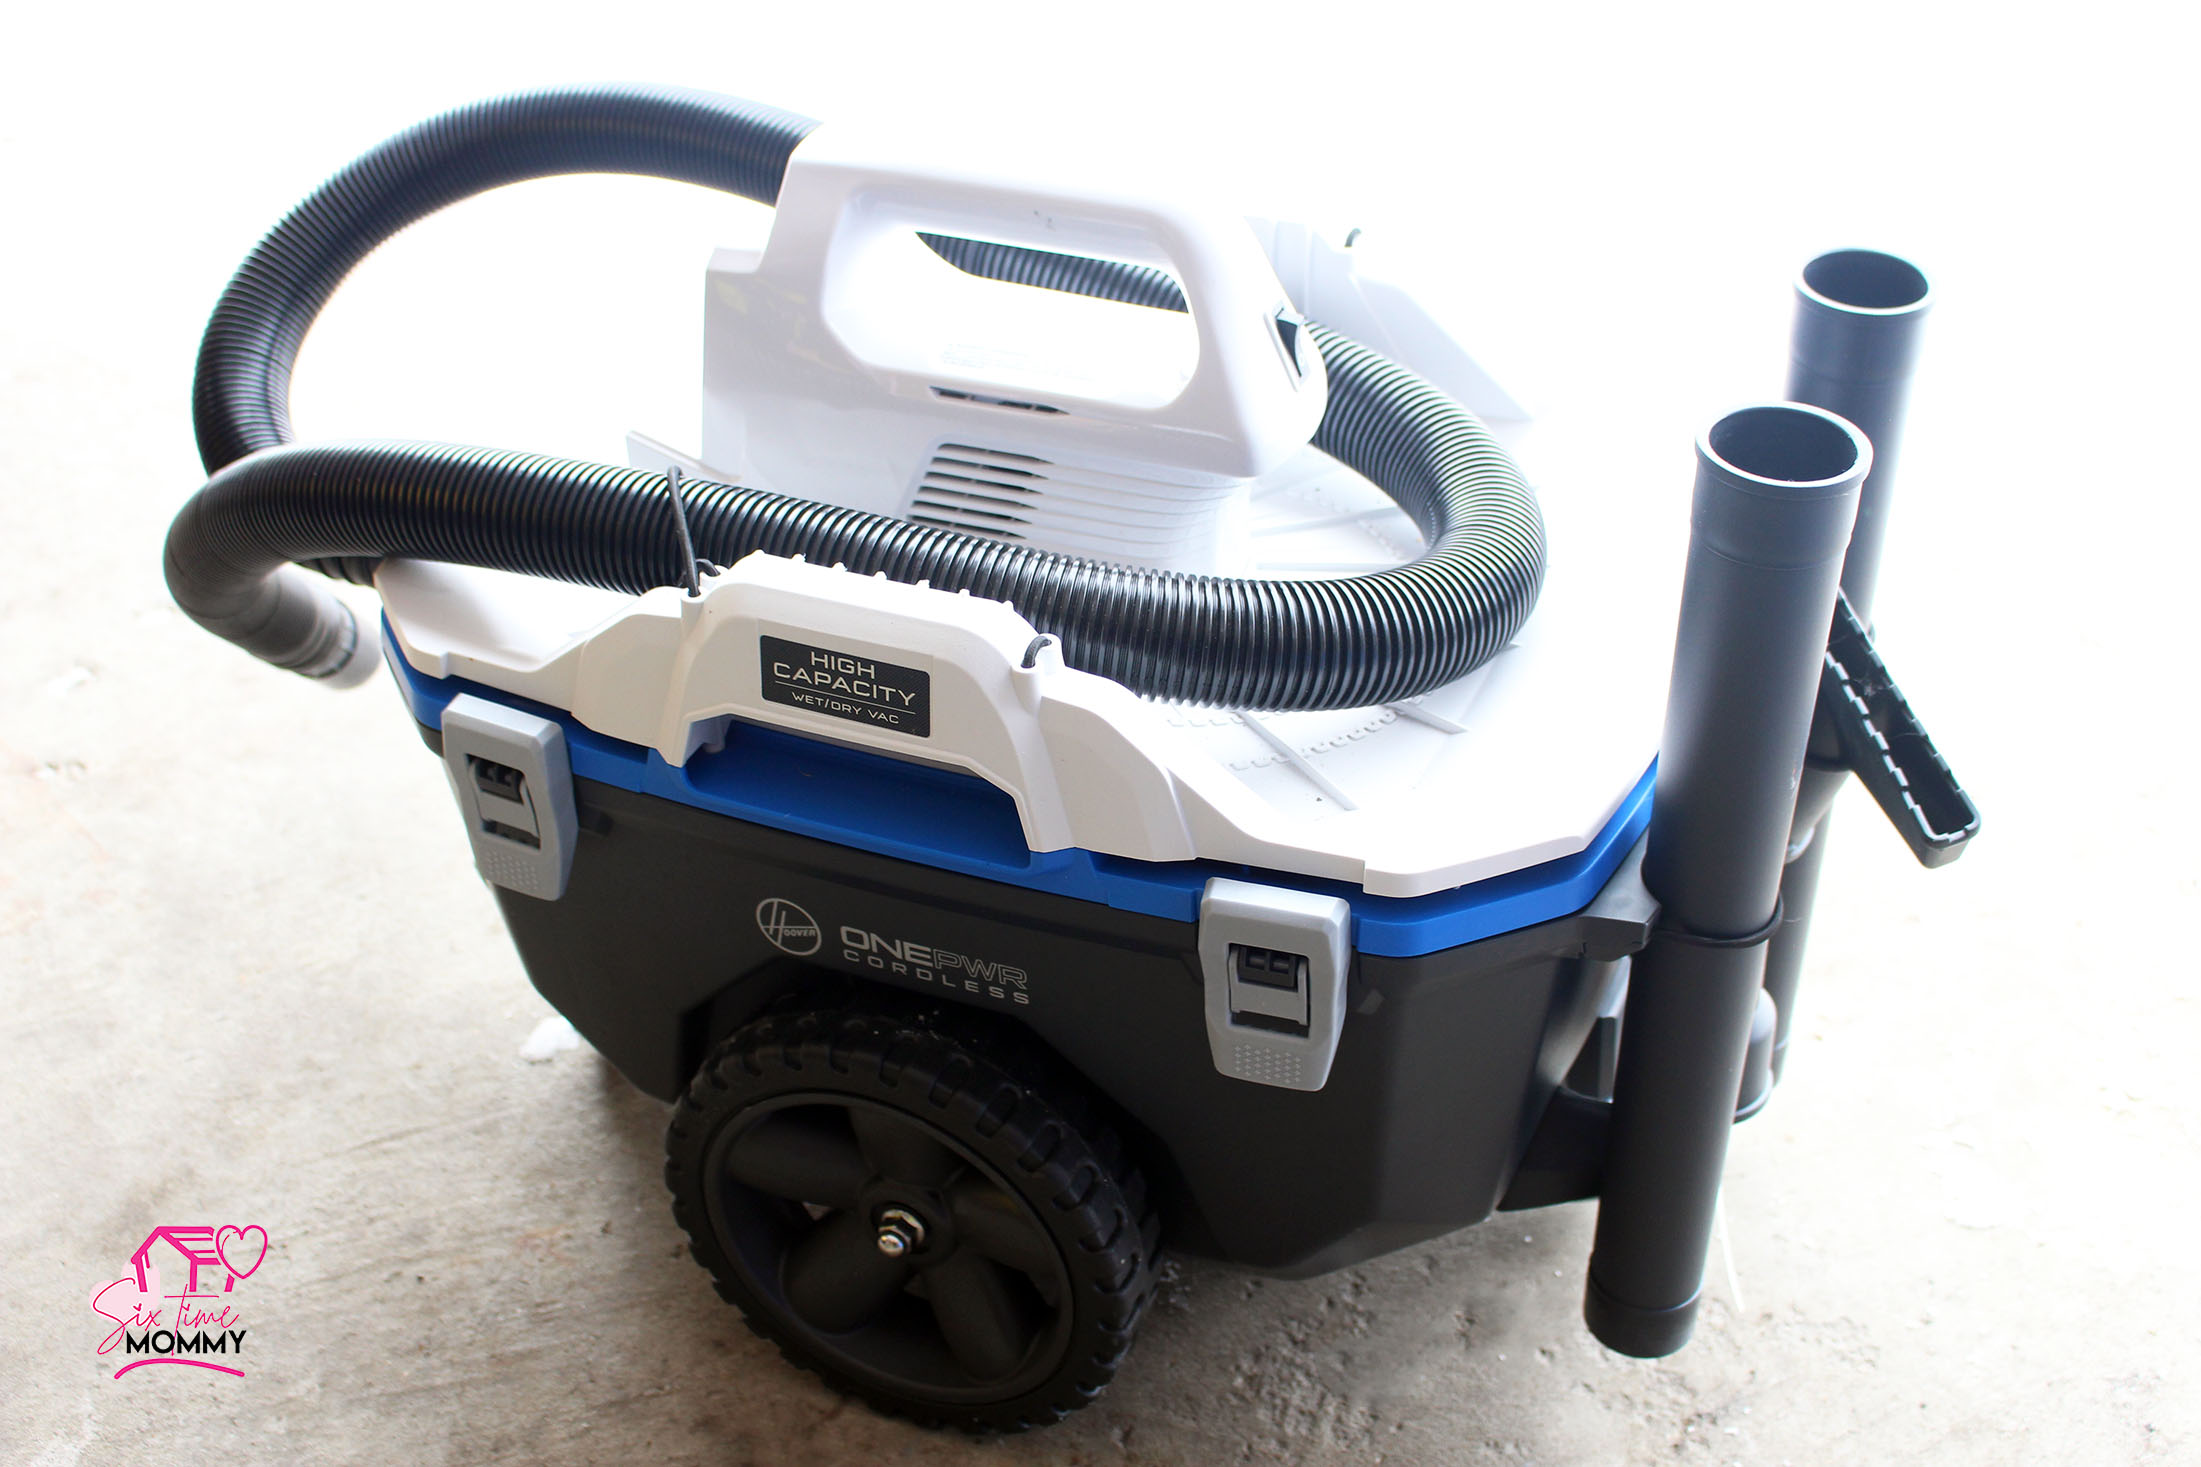 Prepare for Upcoming Winter Weather with Hoover OnePWR